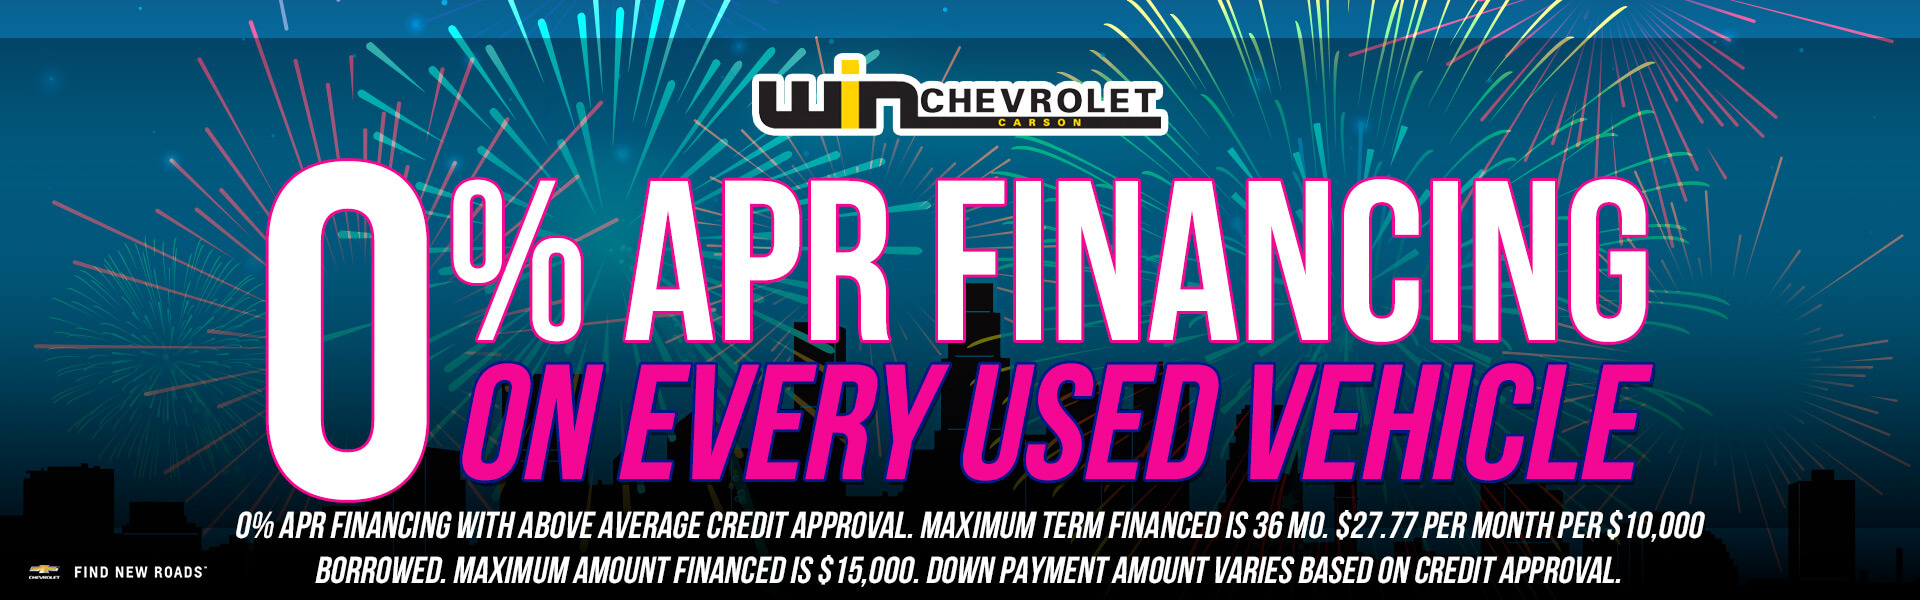 Used 0% APR Financing